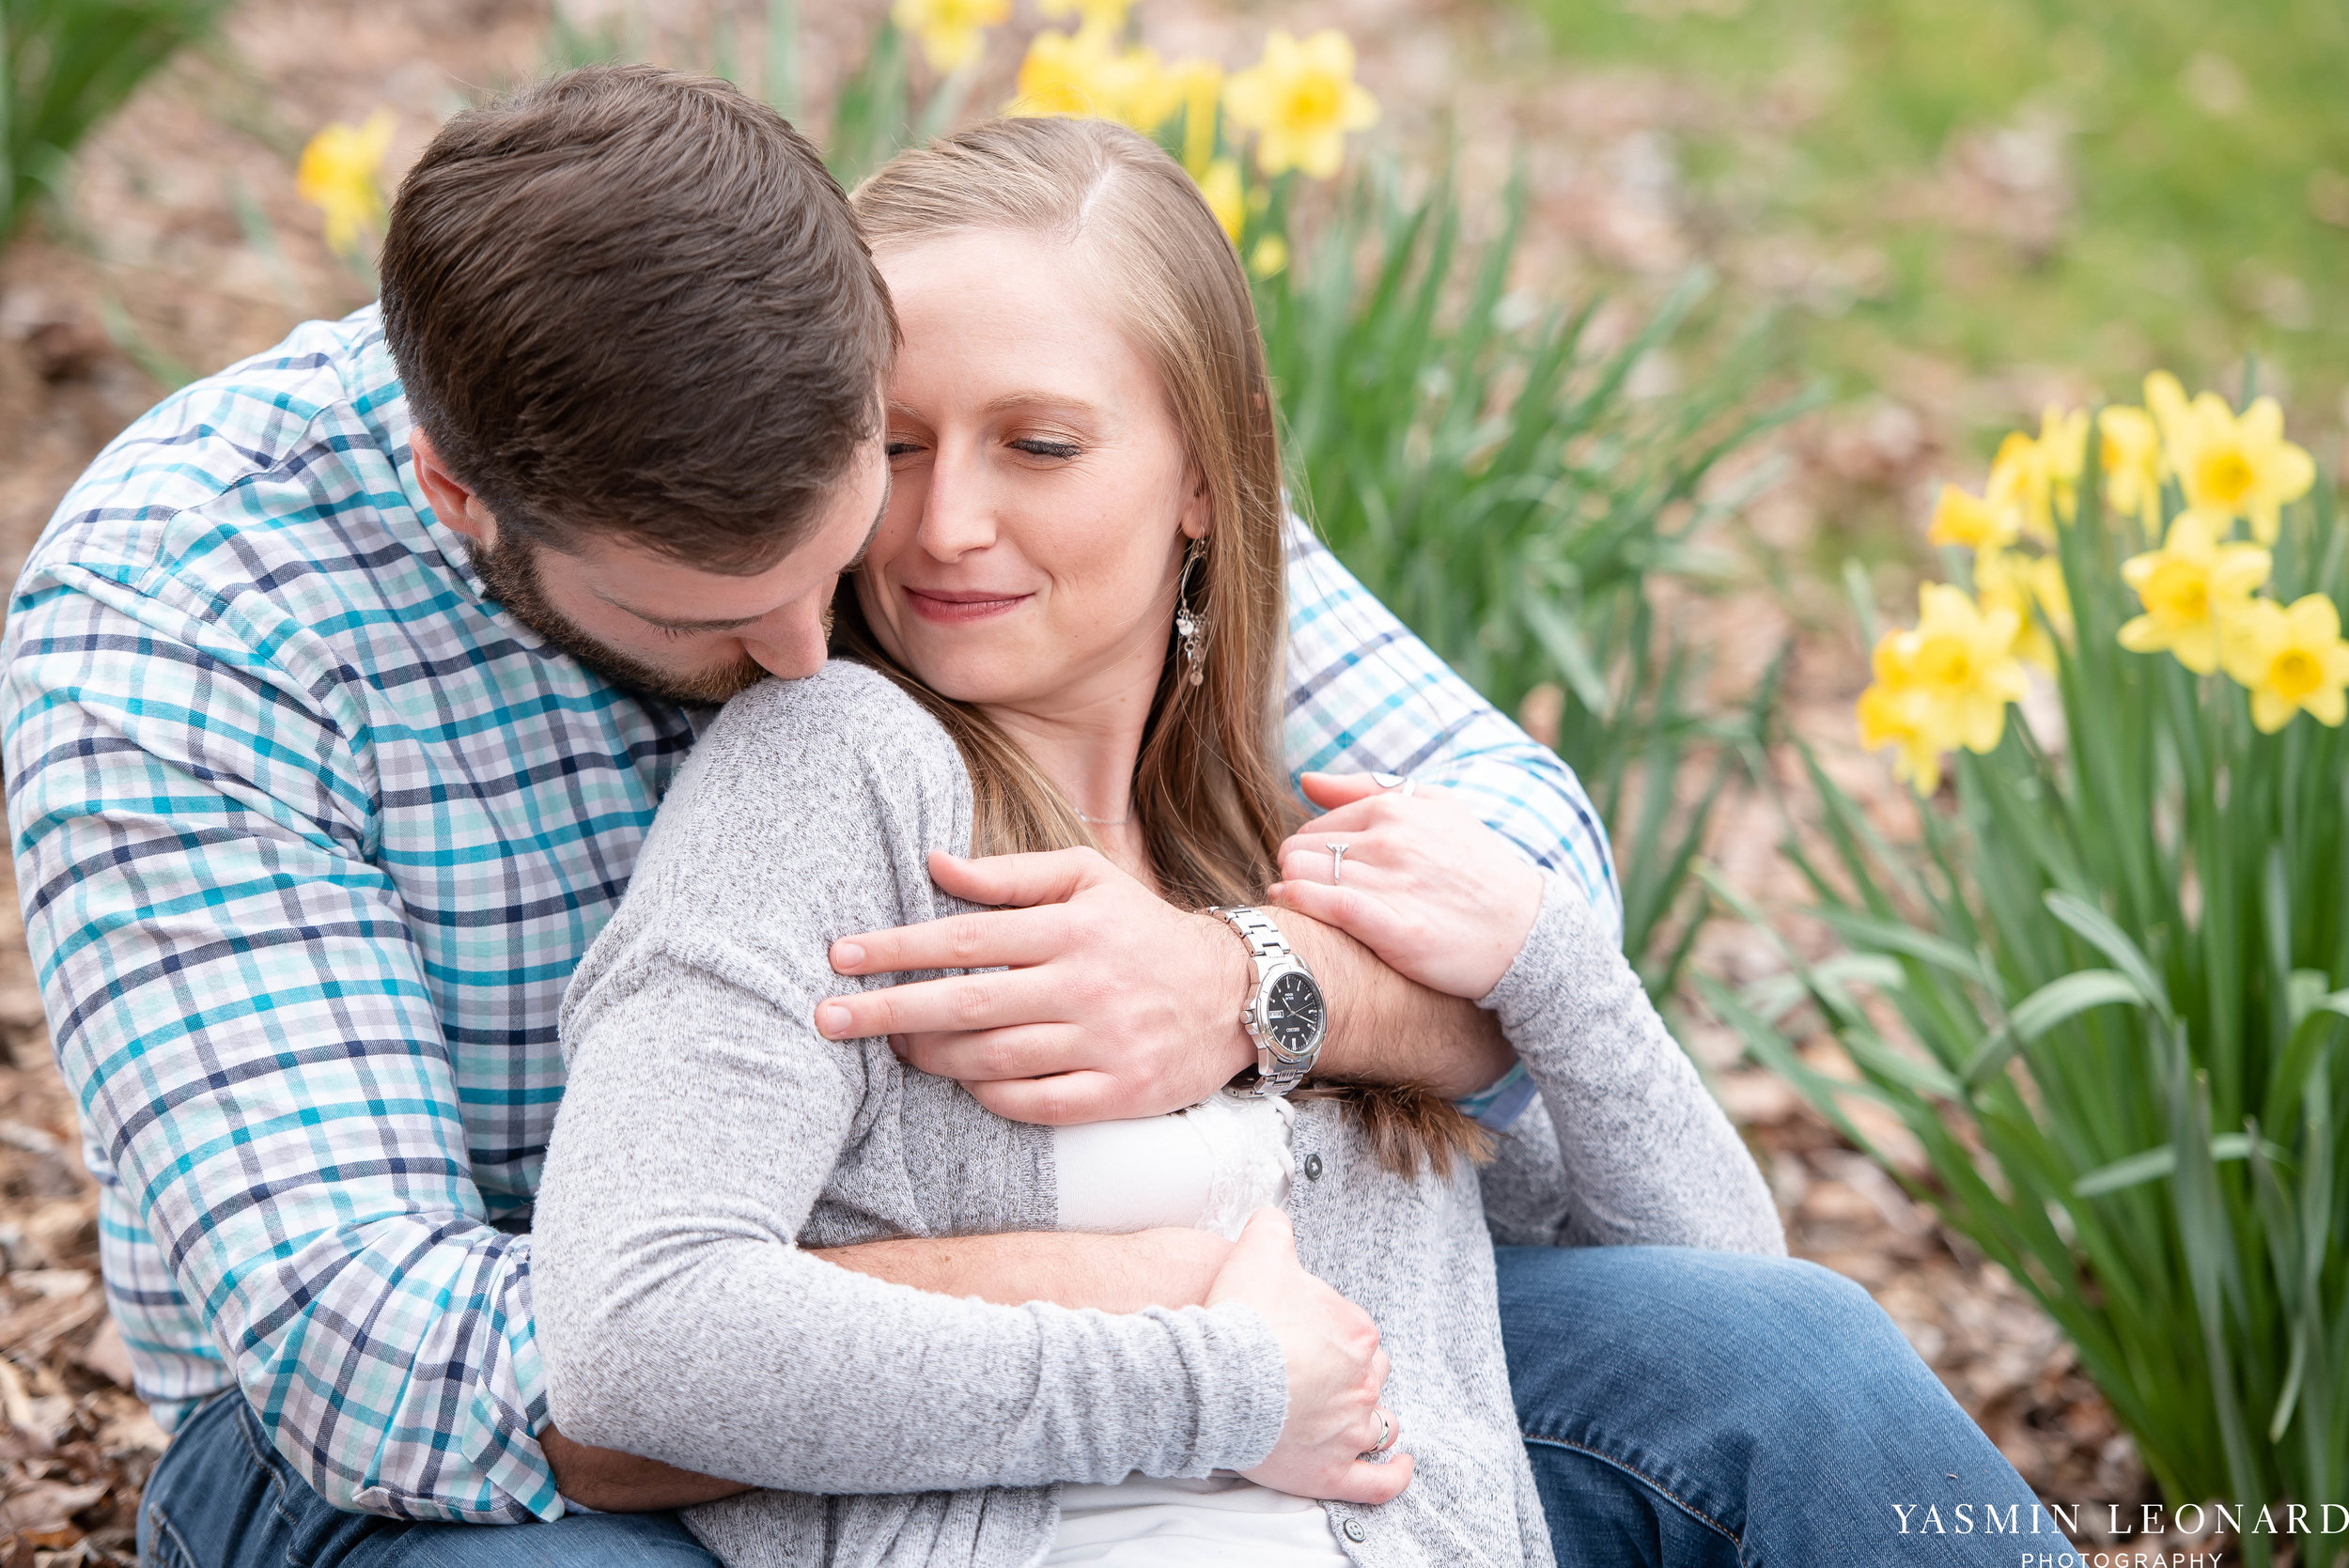 Engagement Session at Tanglewood - Spring Engagement Session - Engagement Session Ideas - Engagement Pictures - What to Wear for Engagement Pictures - Yasmin Leonard Photography-3.jpg